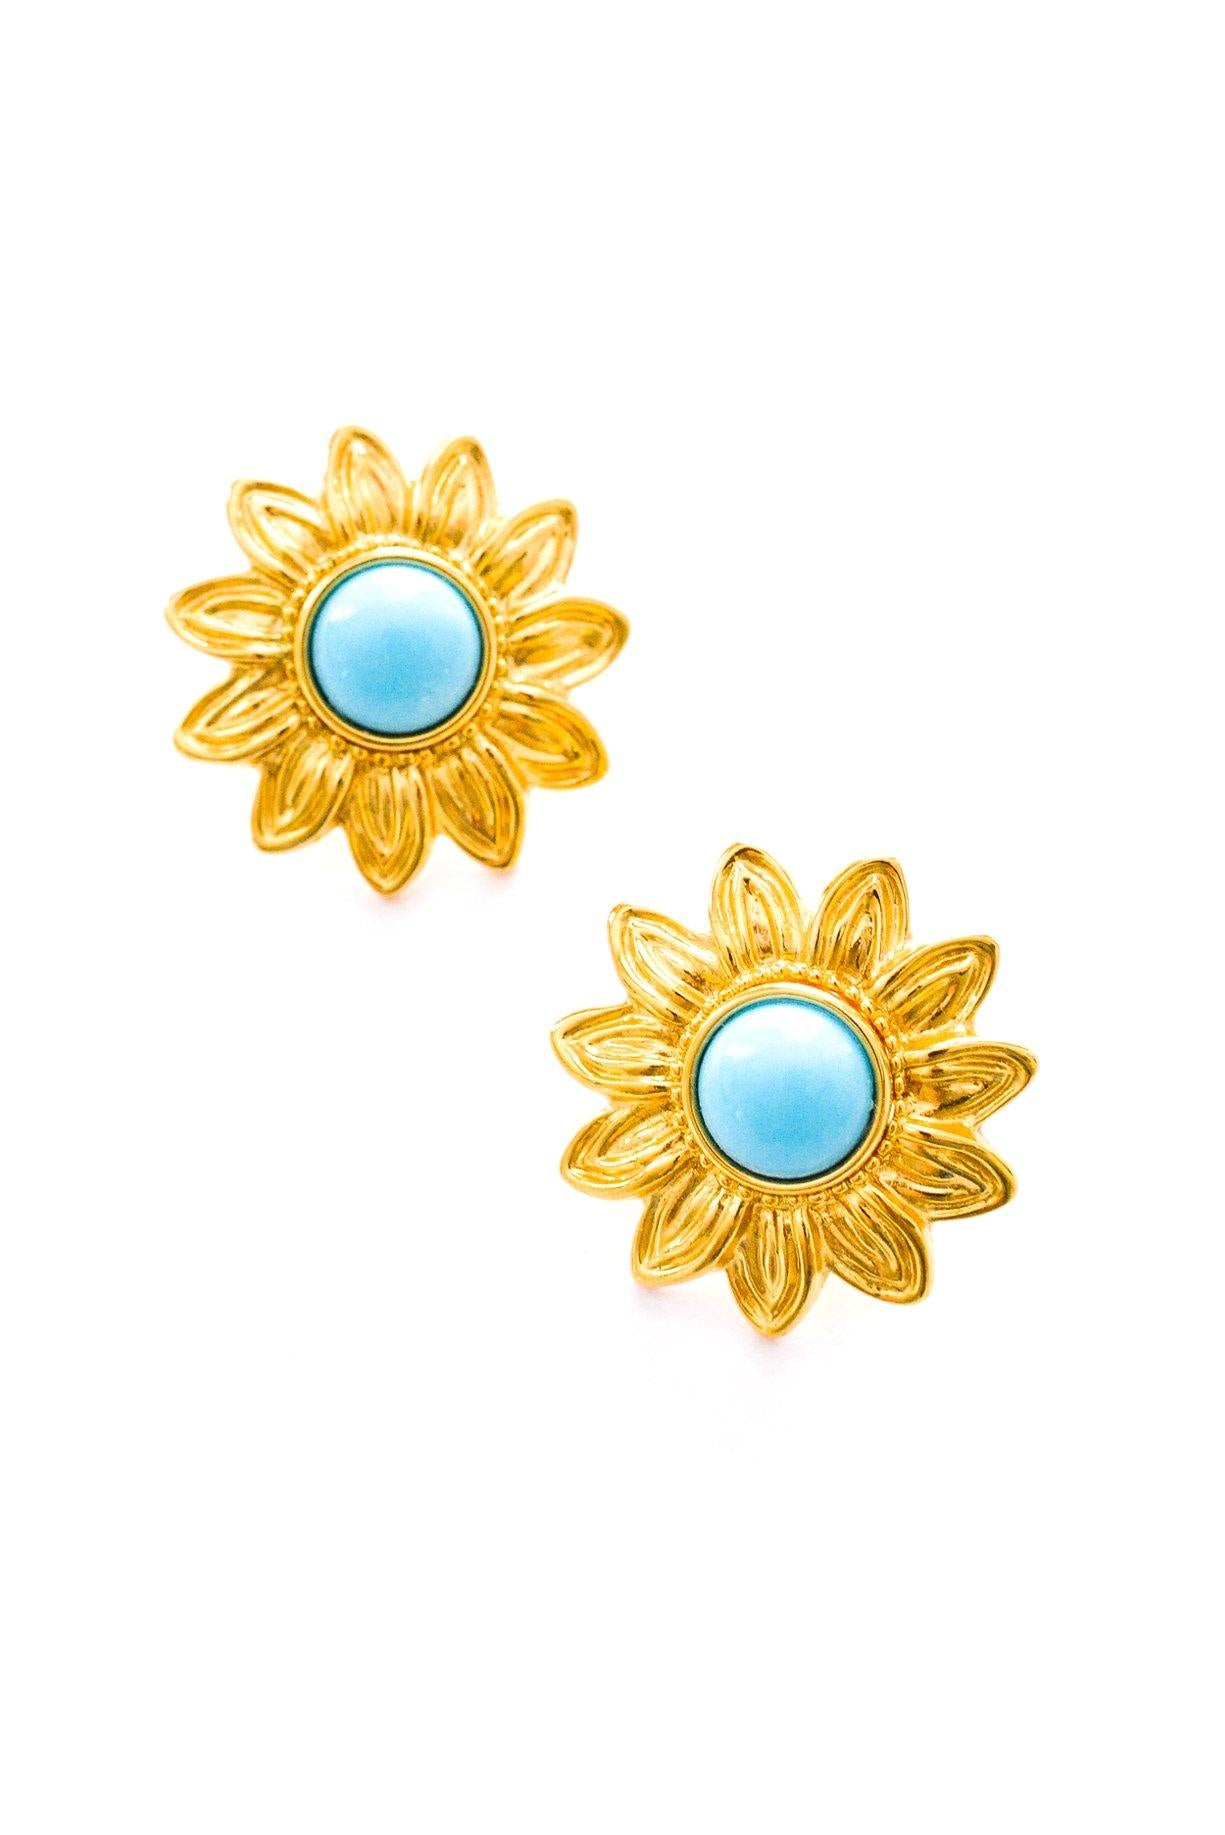 Turquoise Floral Pierced Earrings